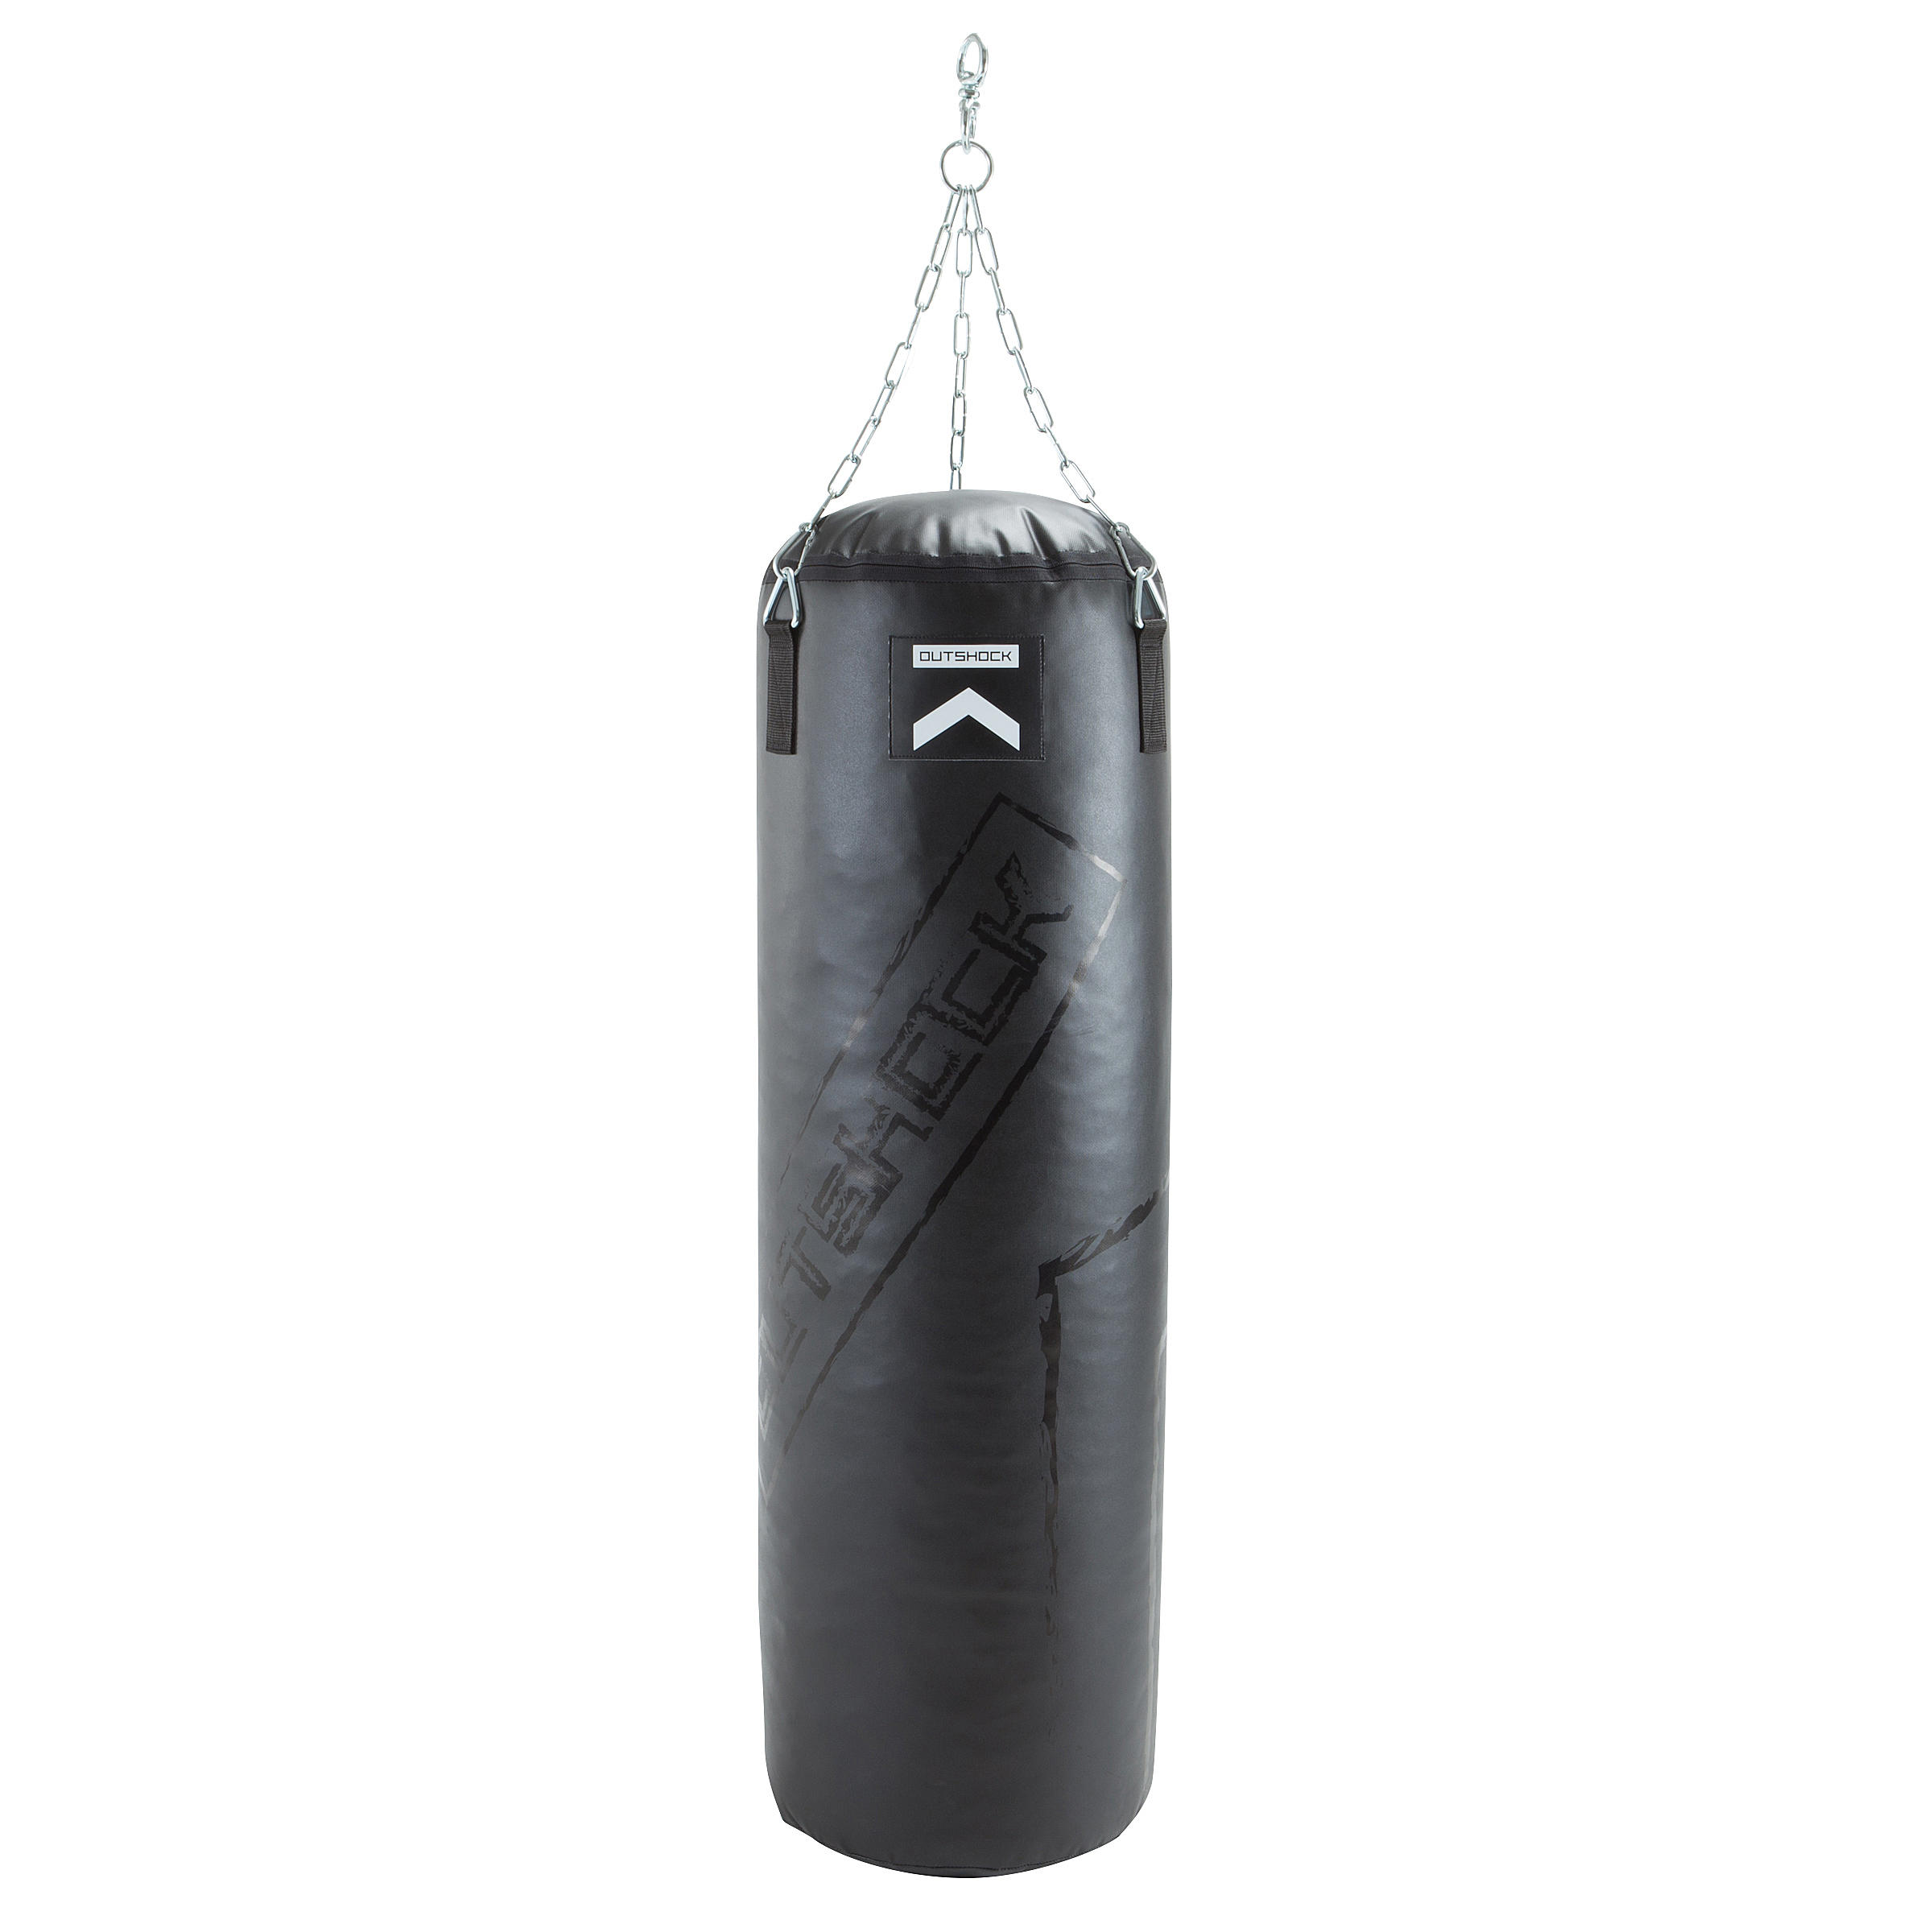 PB 1000 Punch Bag - Black